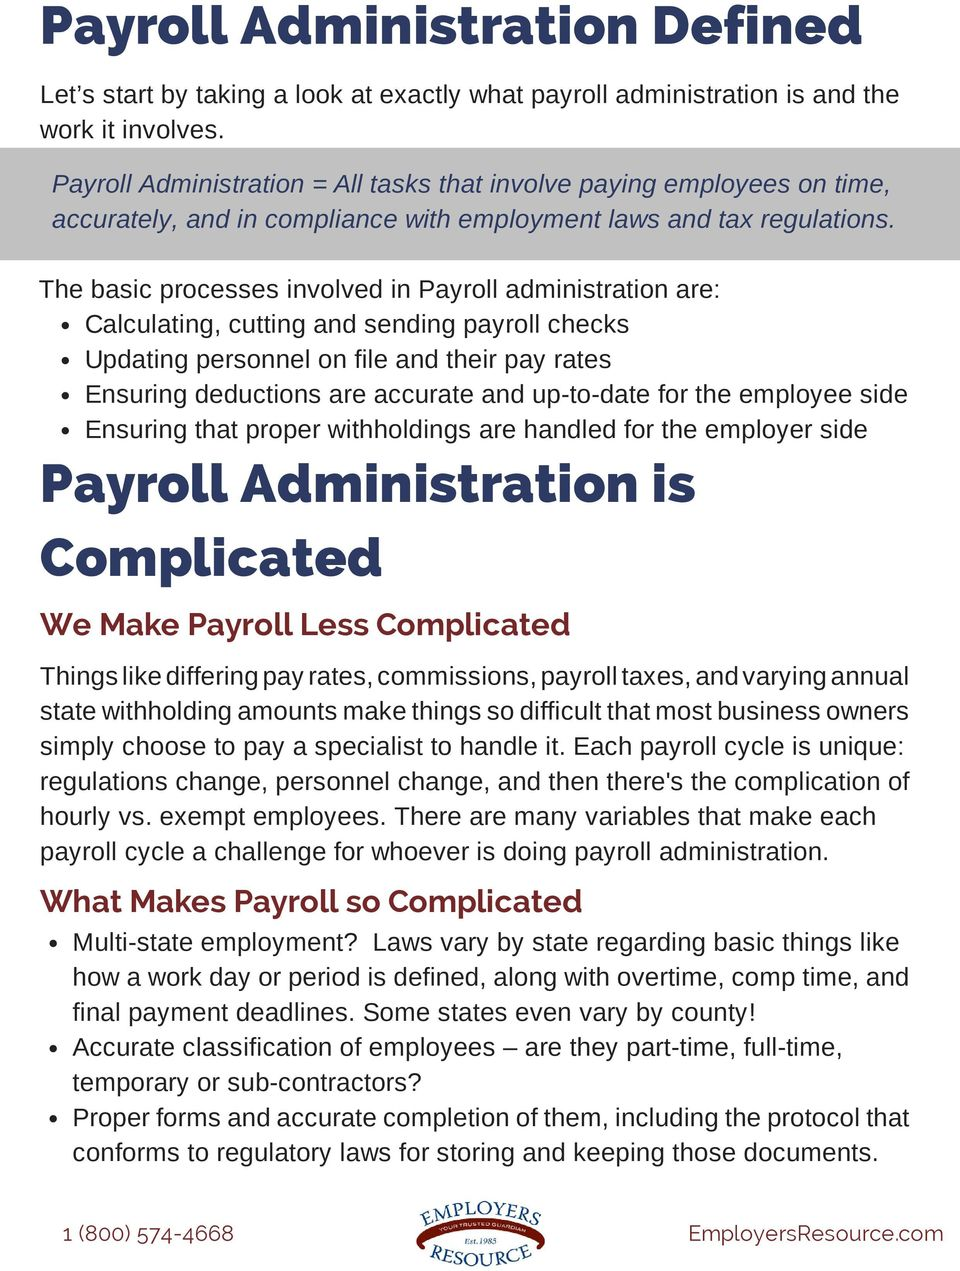 The basic processes involved in Payroll administration are: Calculating, cutting and sending payroll checks Updating personnel on file and their pay rates Ensuring deductions are accurate and